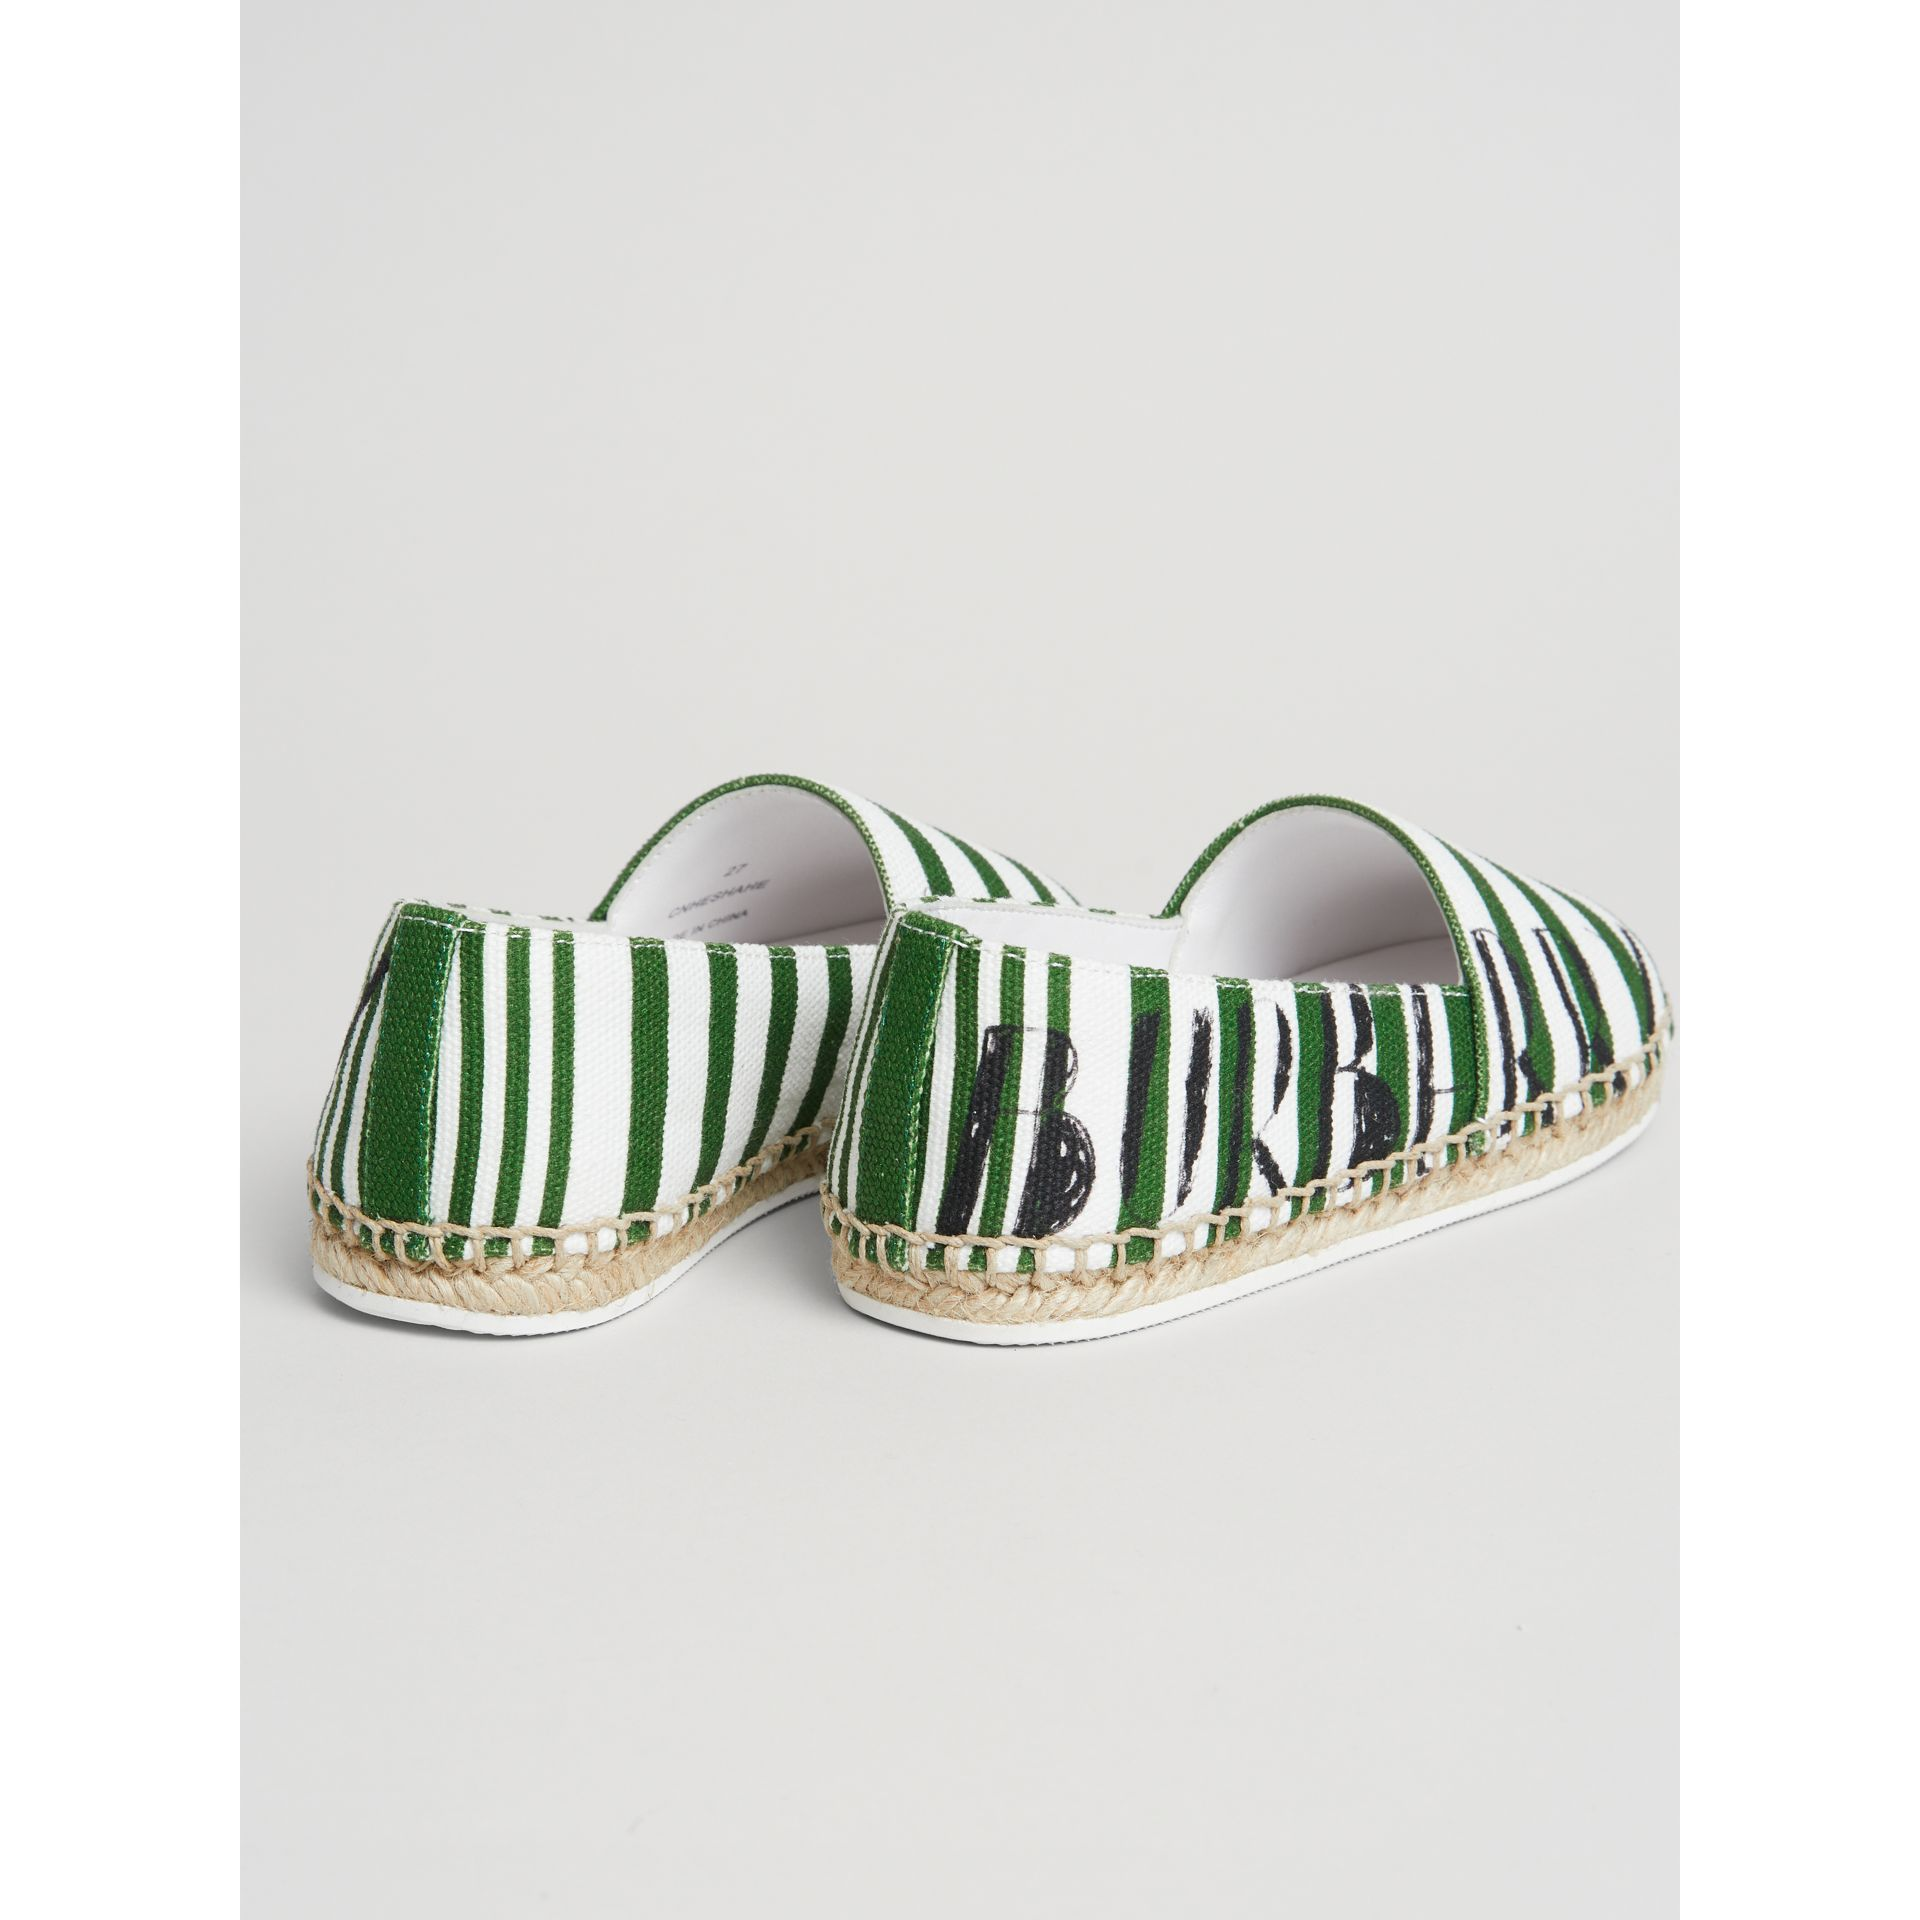 SW1 Print Striped Cotton Espadrilles in Bright Fern Green | Burberry - gallery image 2